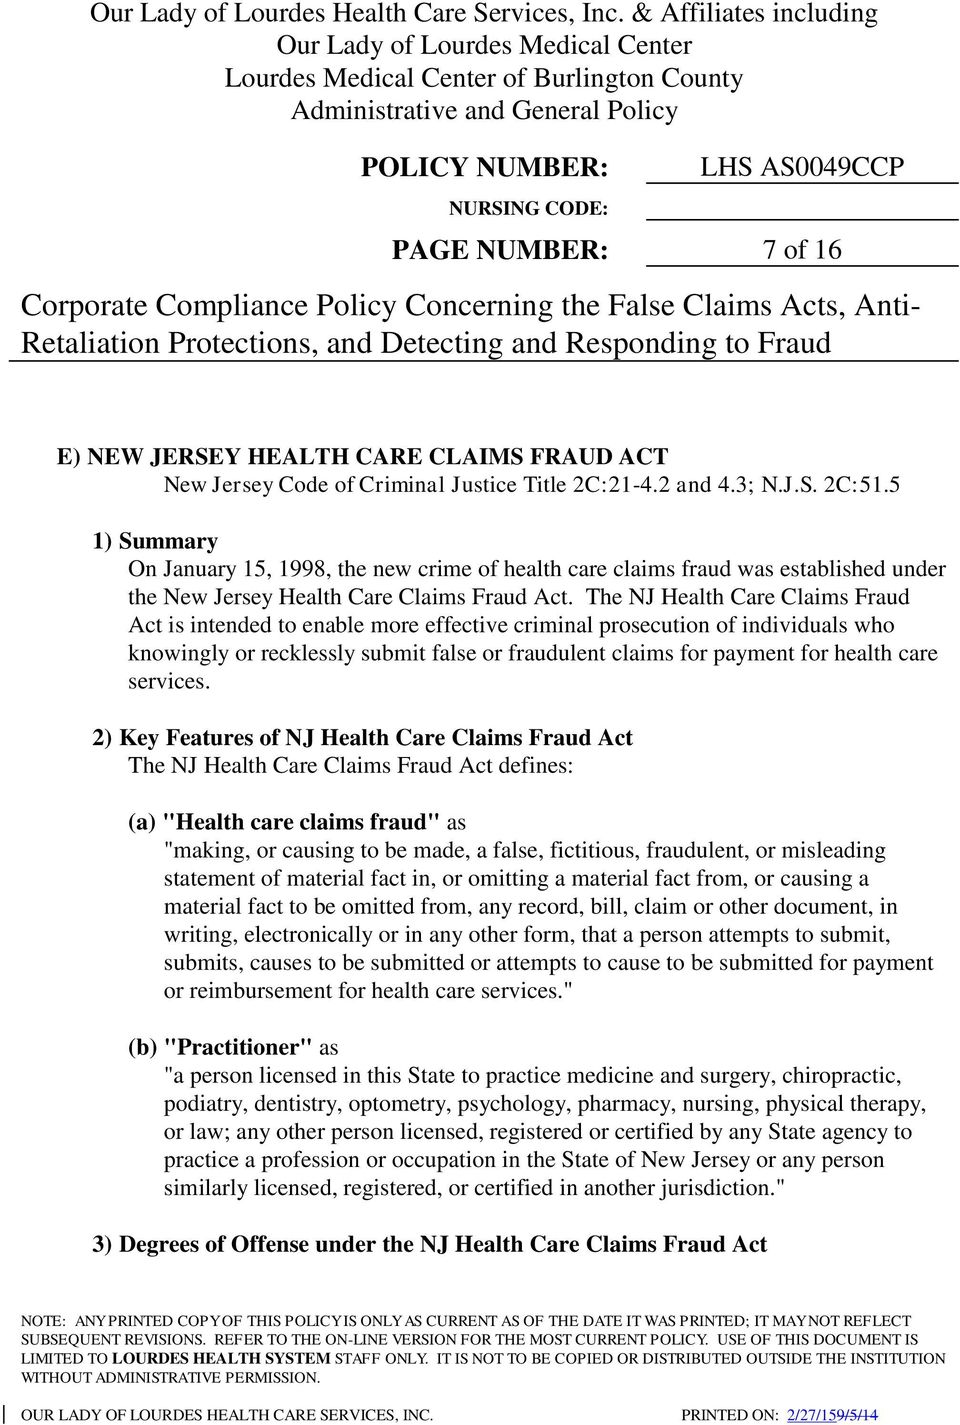 The NJ Health Care Claims Fraud Act is intended to enable more effective criminal prosecution of individuals who knowingly or recklessly submit false or fraudulent claims for payment for health care